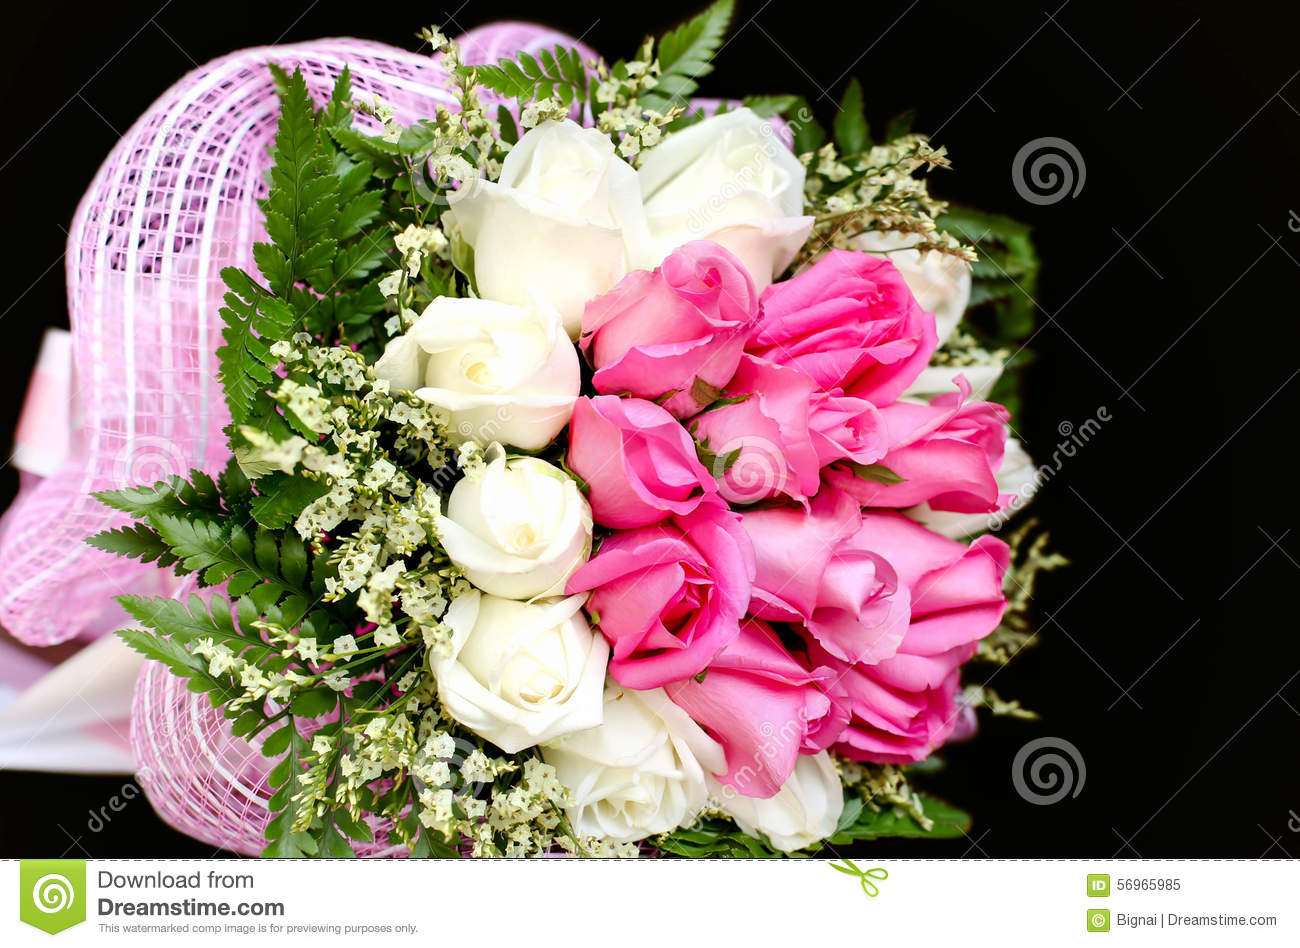 Bouquet of pink and white rose flowers stock image image of bloom bouquet of pink and white rose flowers izmirmasajfo